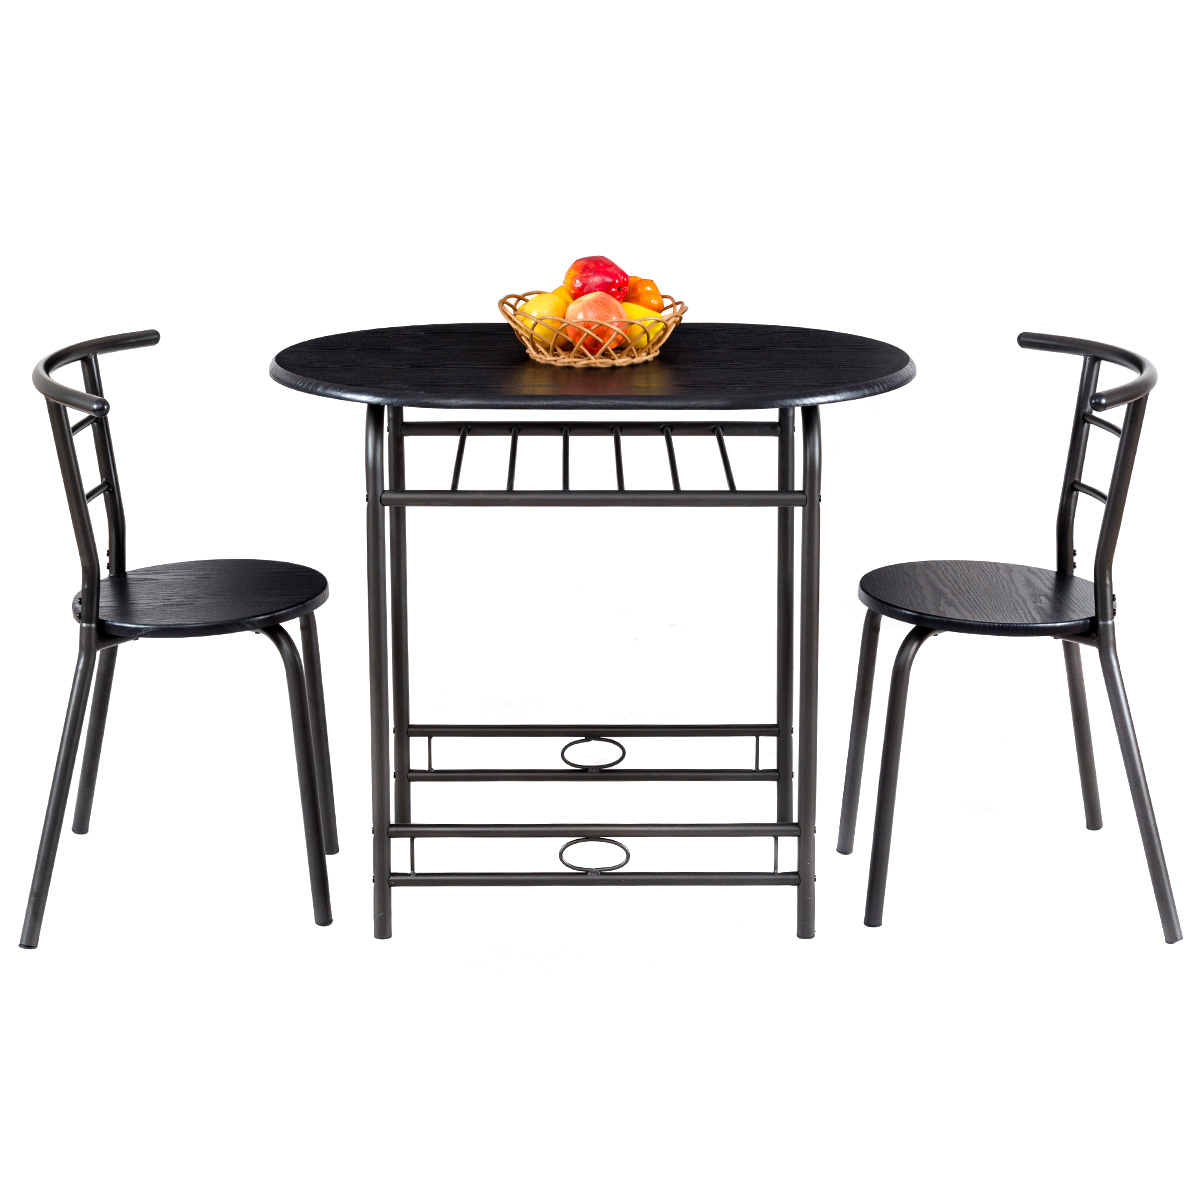 Gymax 3 Piece Dining Set Home Kitchen Furniture Table and 2 Chairs Black